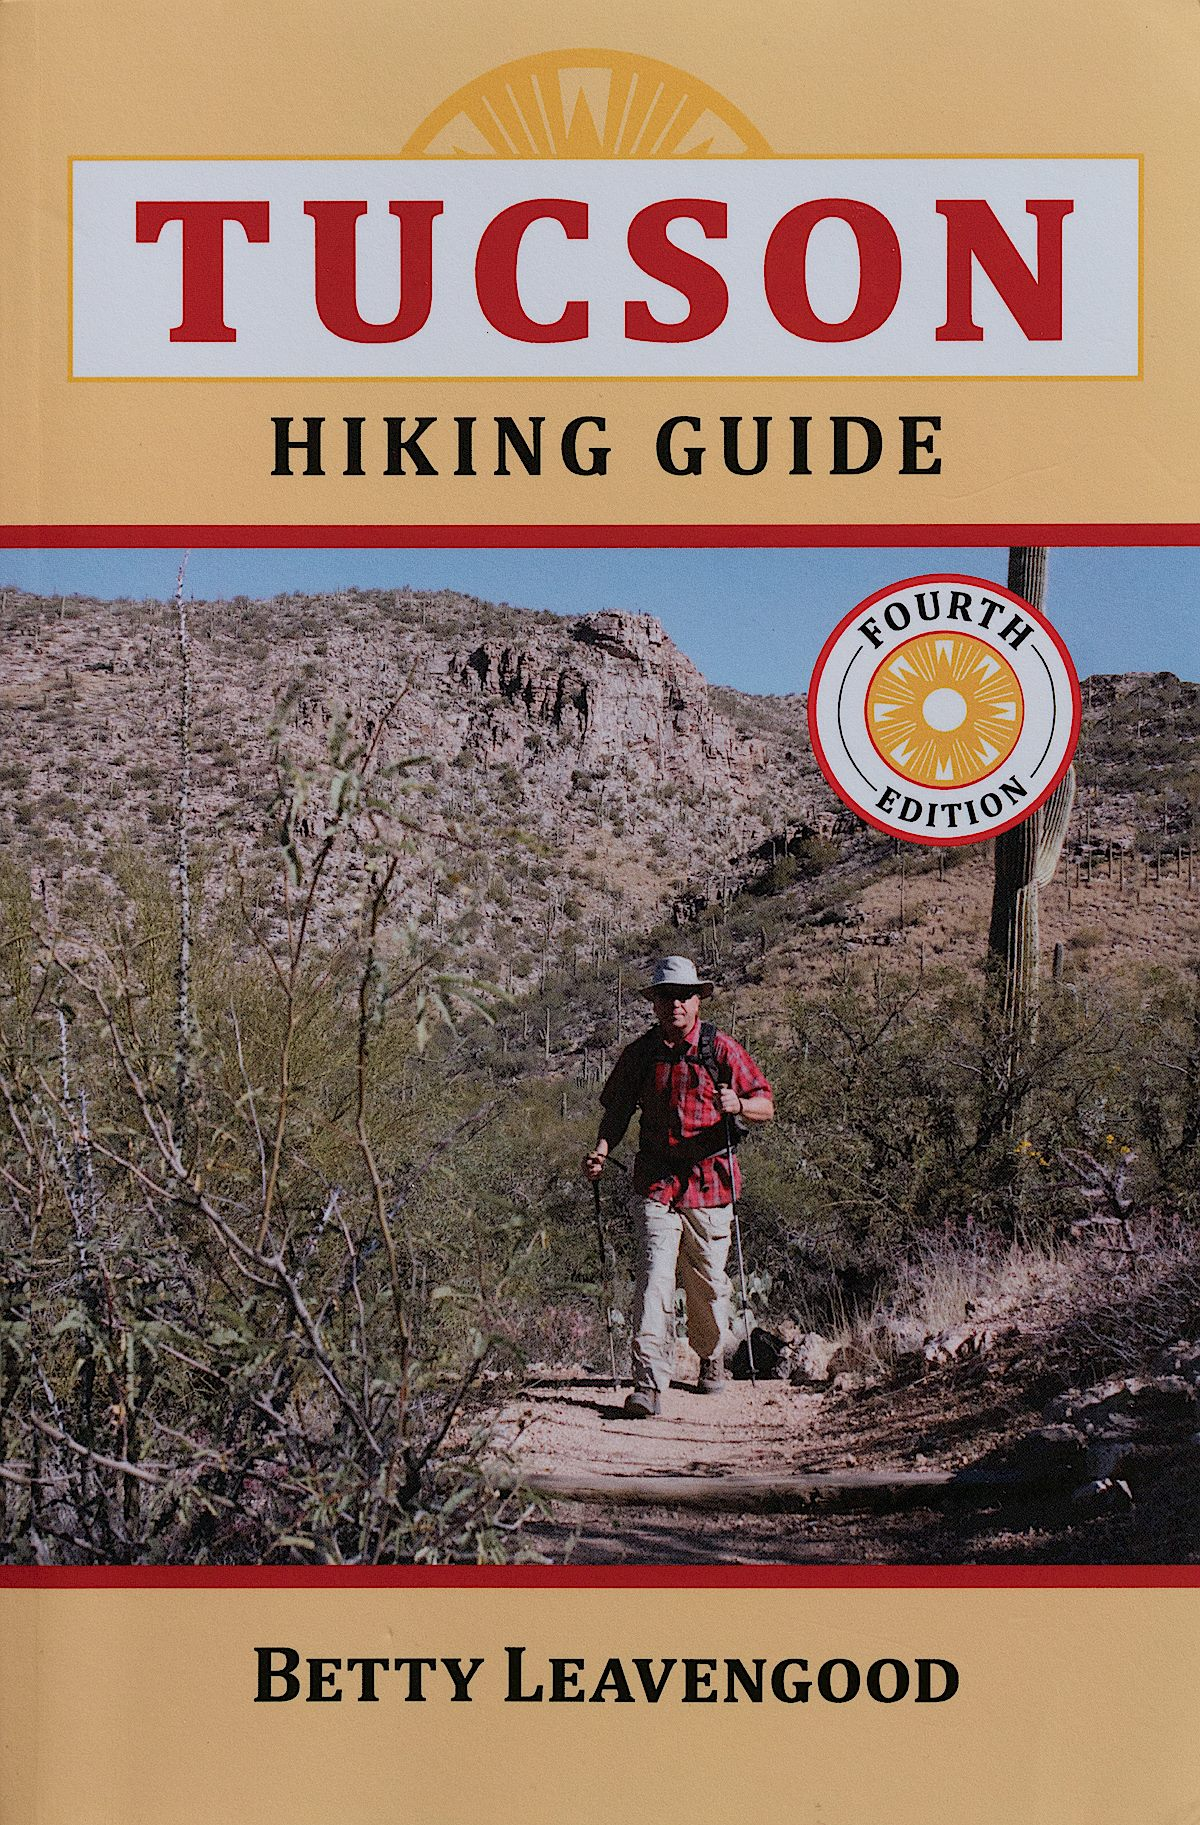 Tucson Hiking Guide 4th Edition. September 2017.